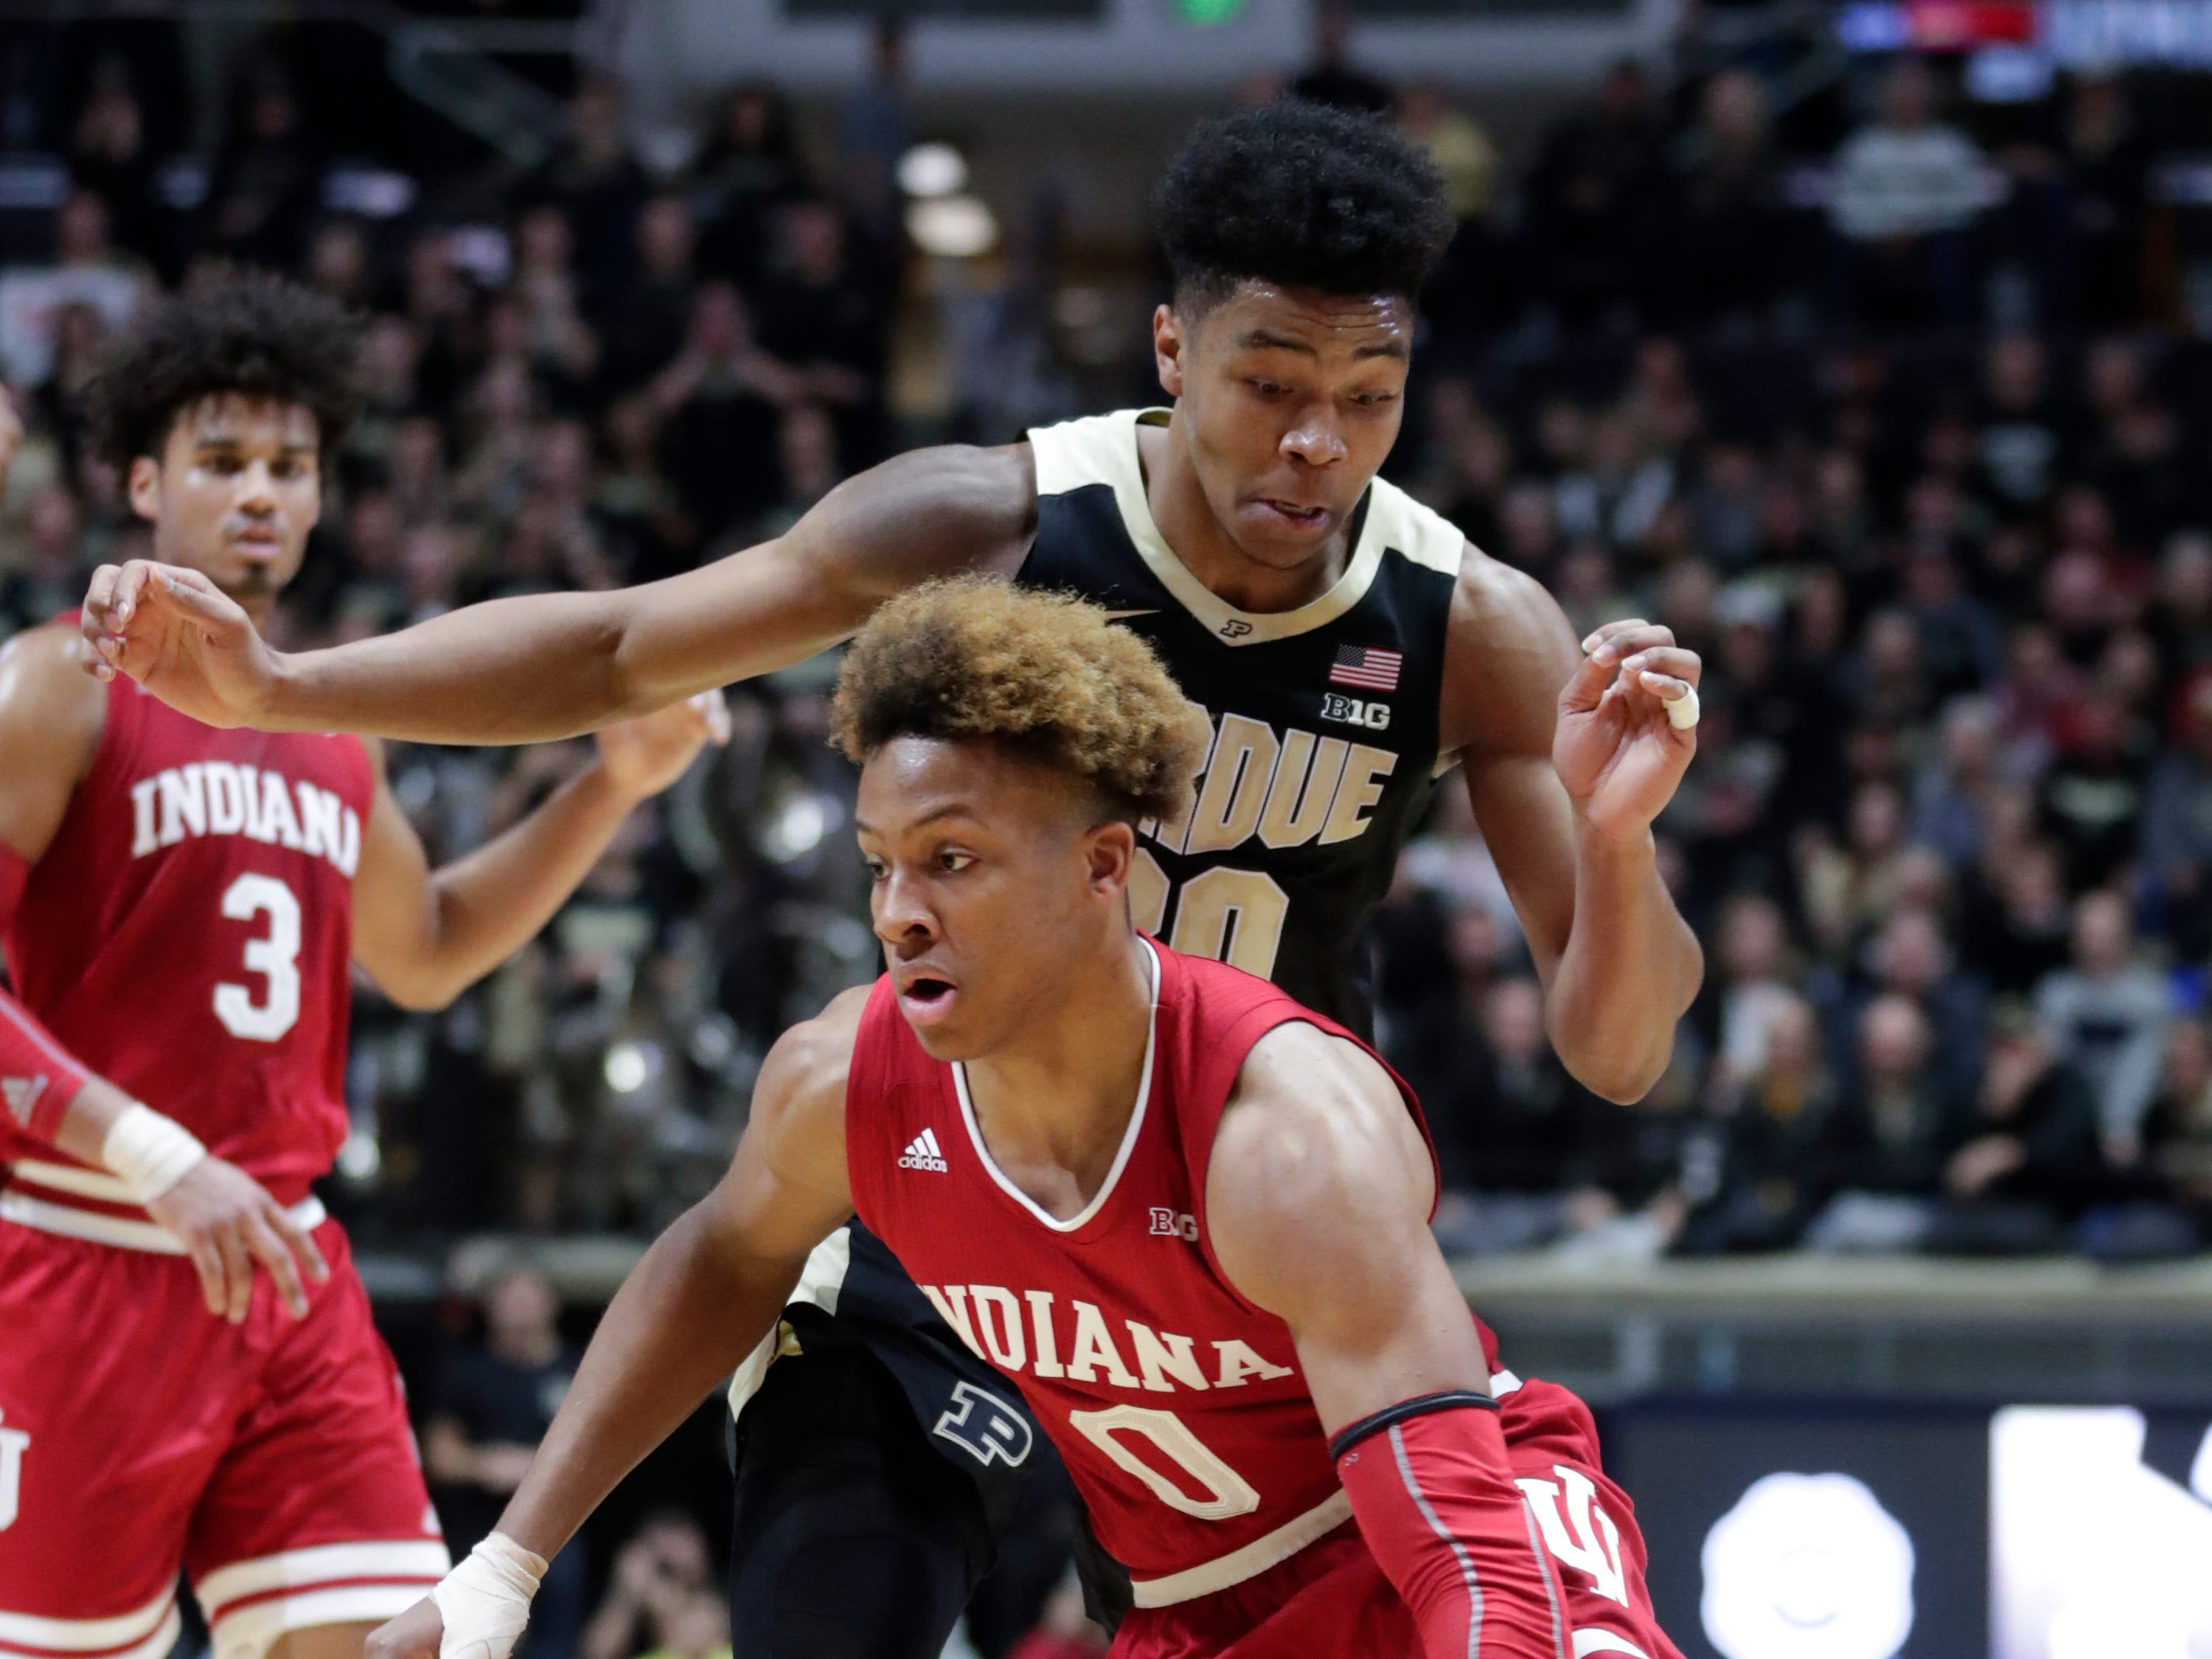 Indiana guard Romeo Langford (0) cuts in front of Purdue guard Nojel Eastern (20) during the first half in West Lafayette.